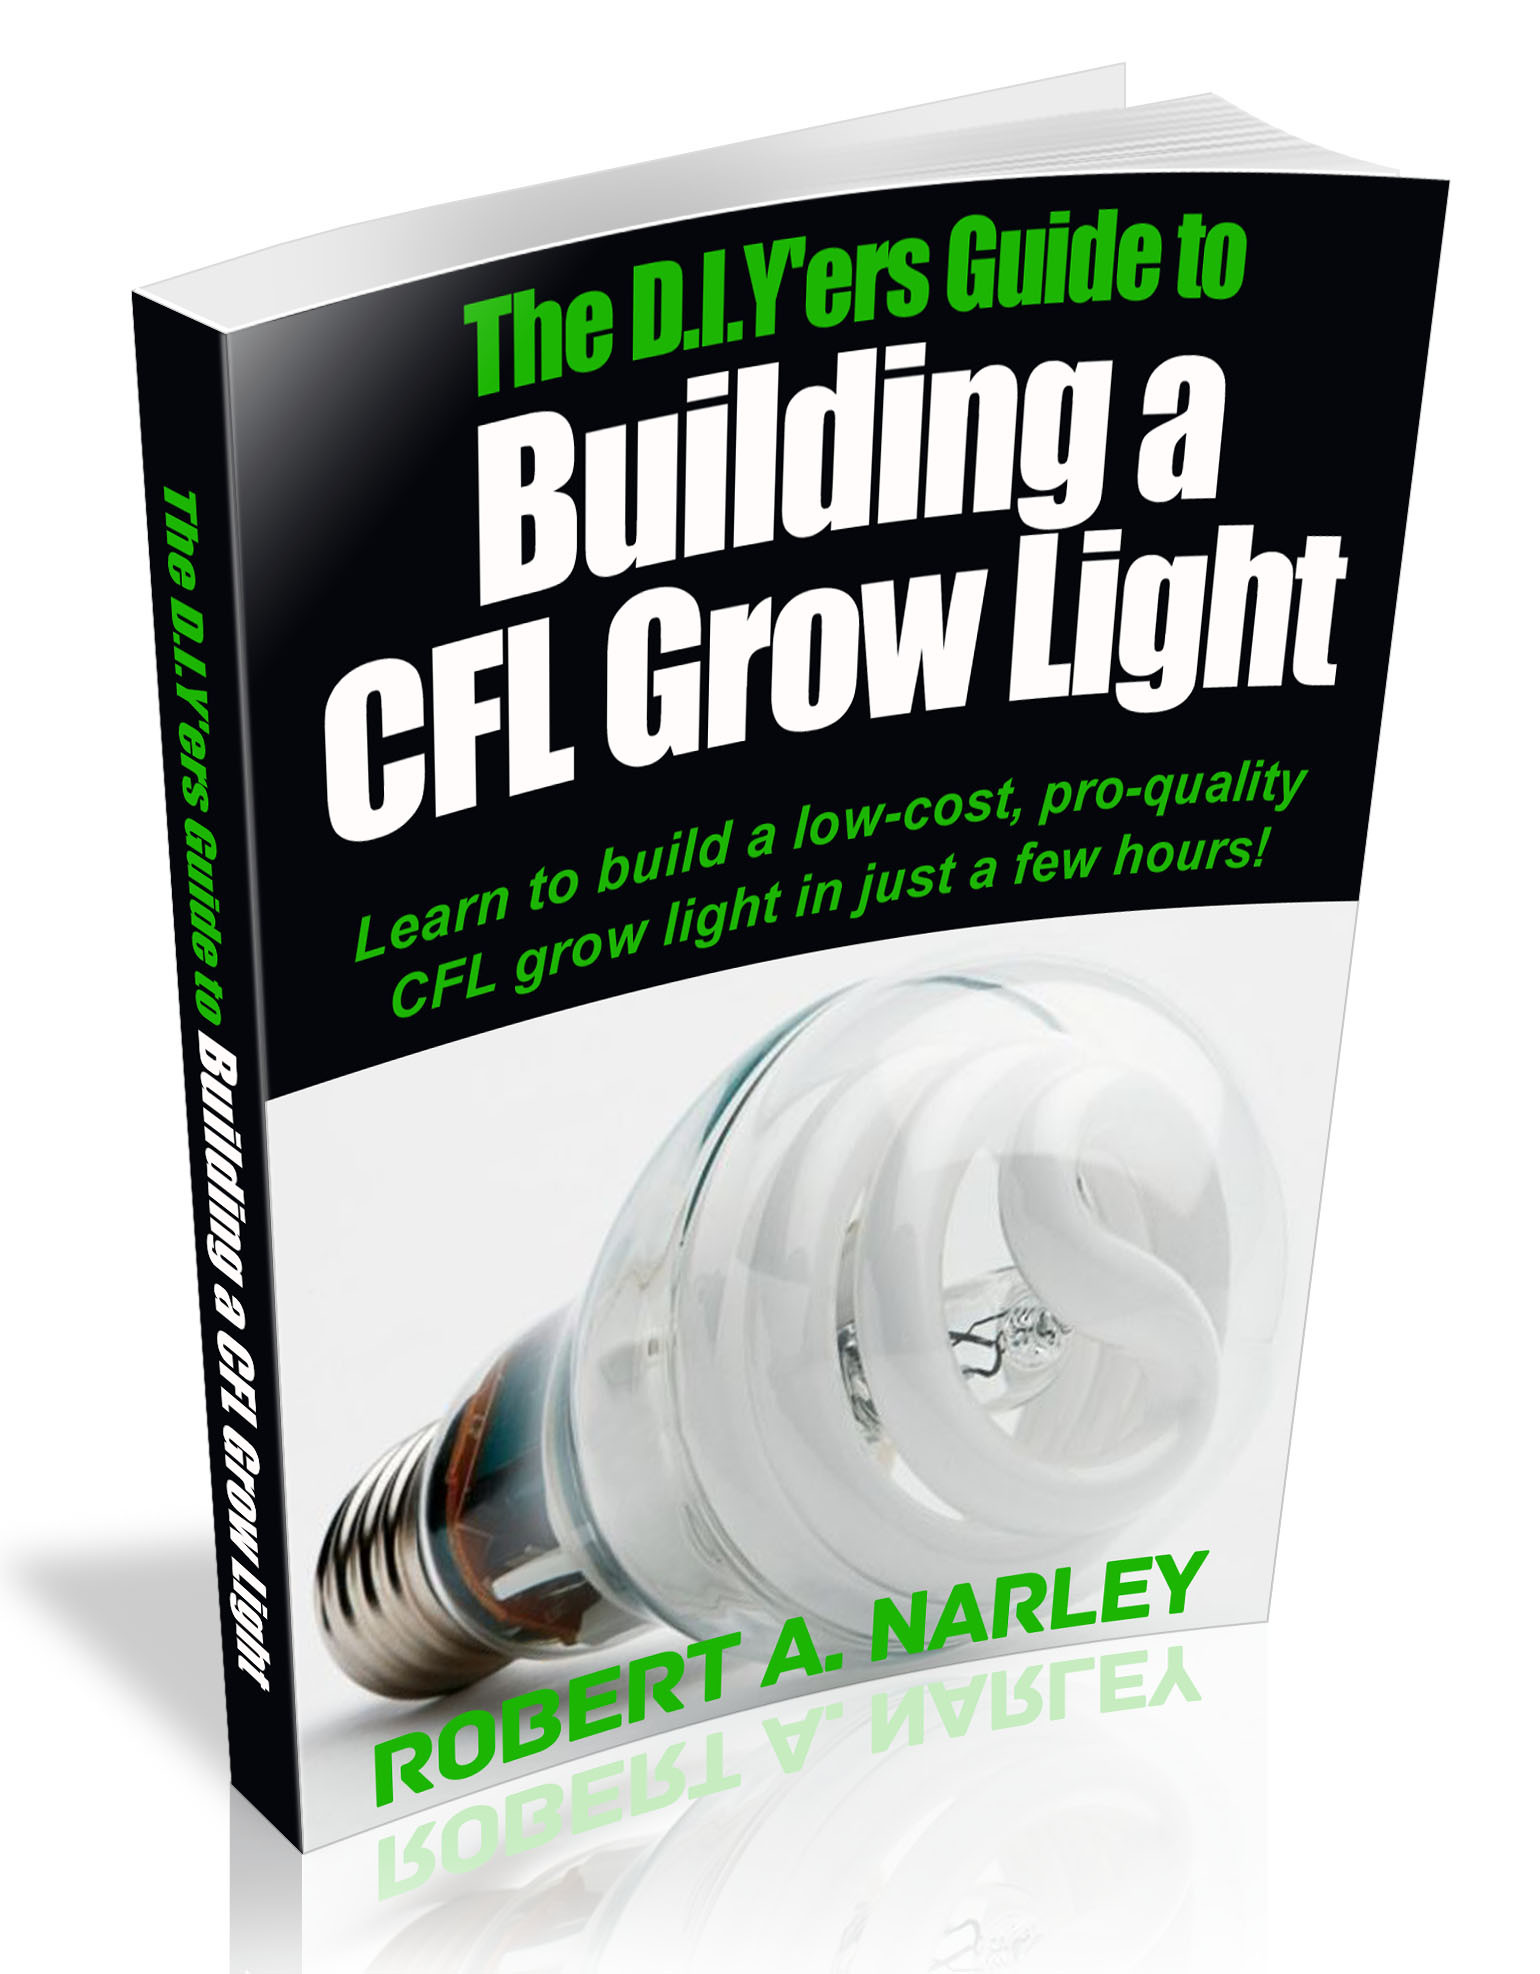 Best ideas about DIY Cfl Grow Light . Save or Pin The DIYers Guide to Building a CFL Grow Light Now.